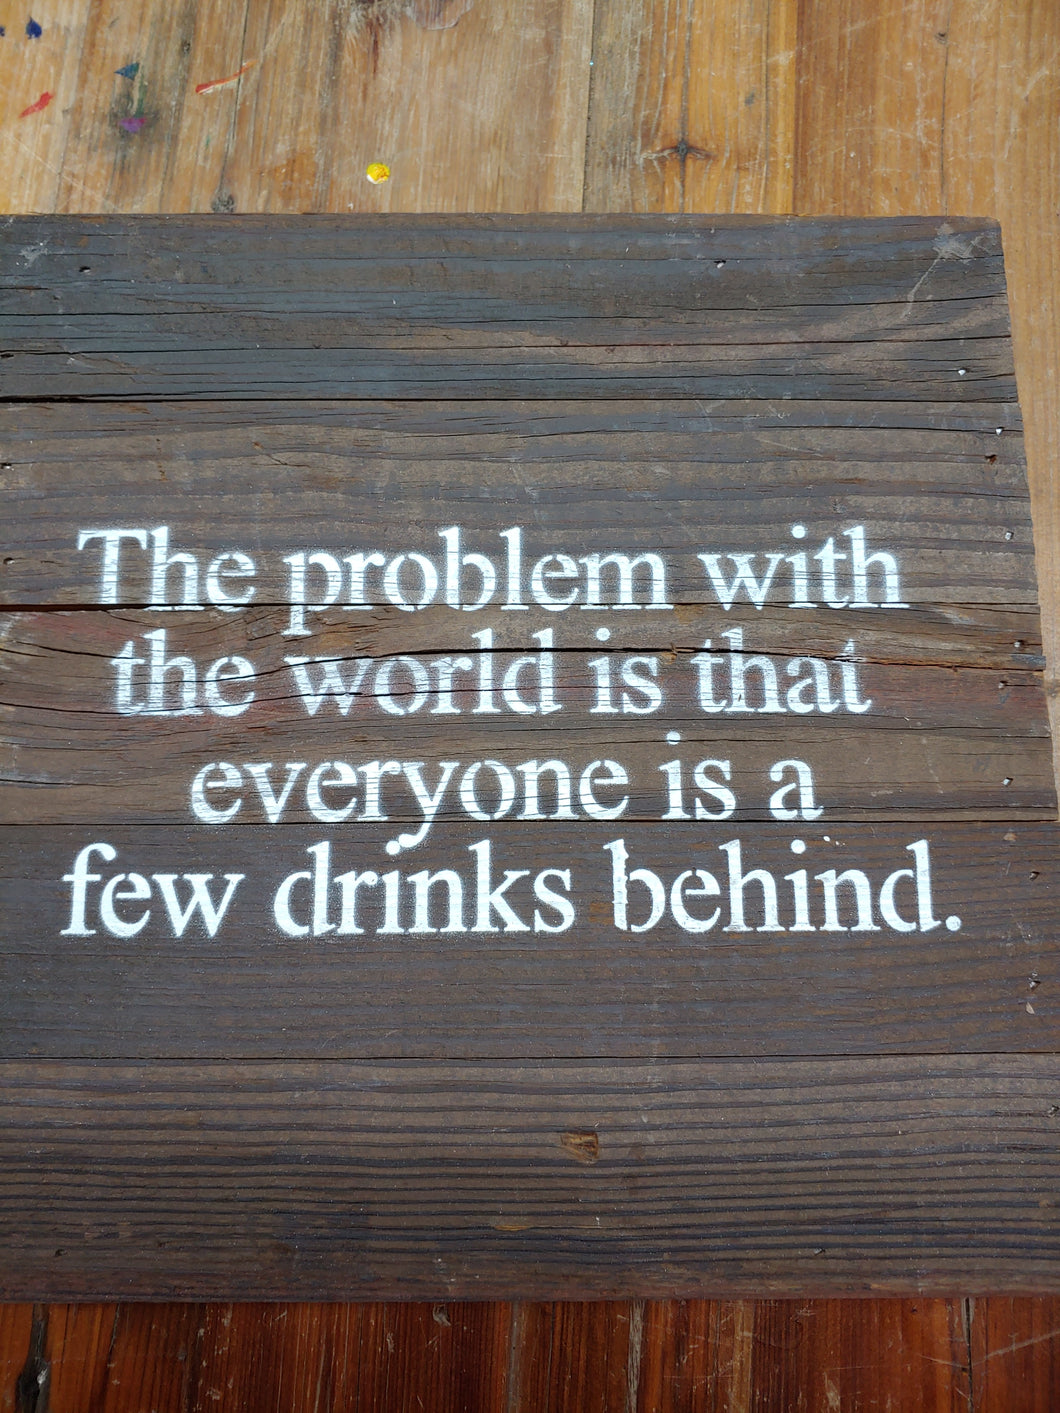 The problem with the world is that everyone is that everyone is a few drinks behind. | Reclaimed lumber wooden sign | Handmade | 10